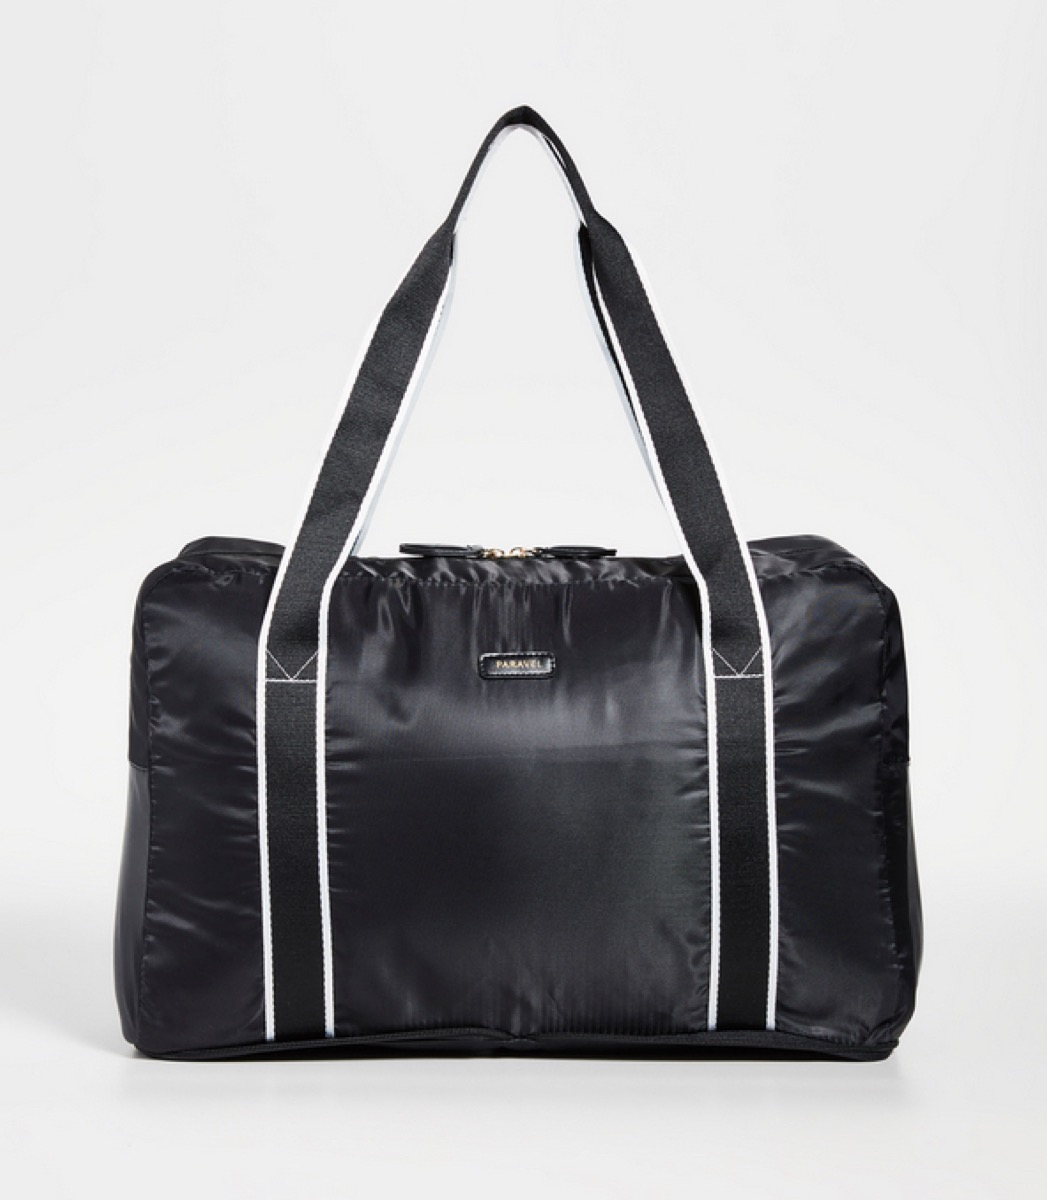 black duffel bag with black and white straps